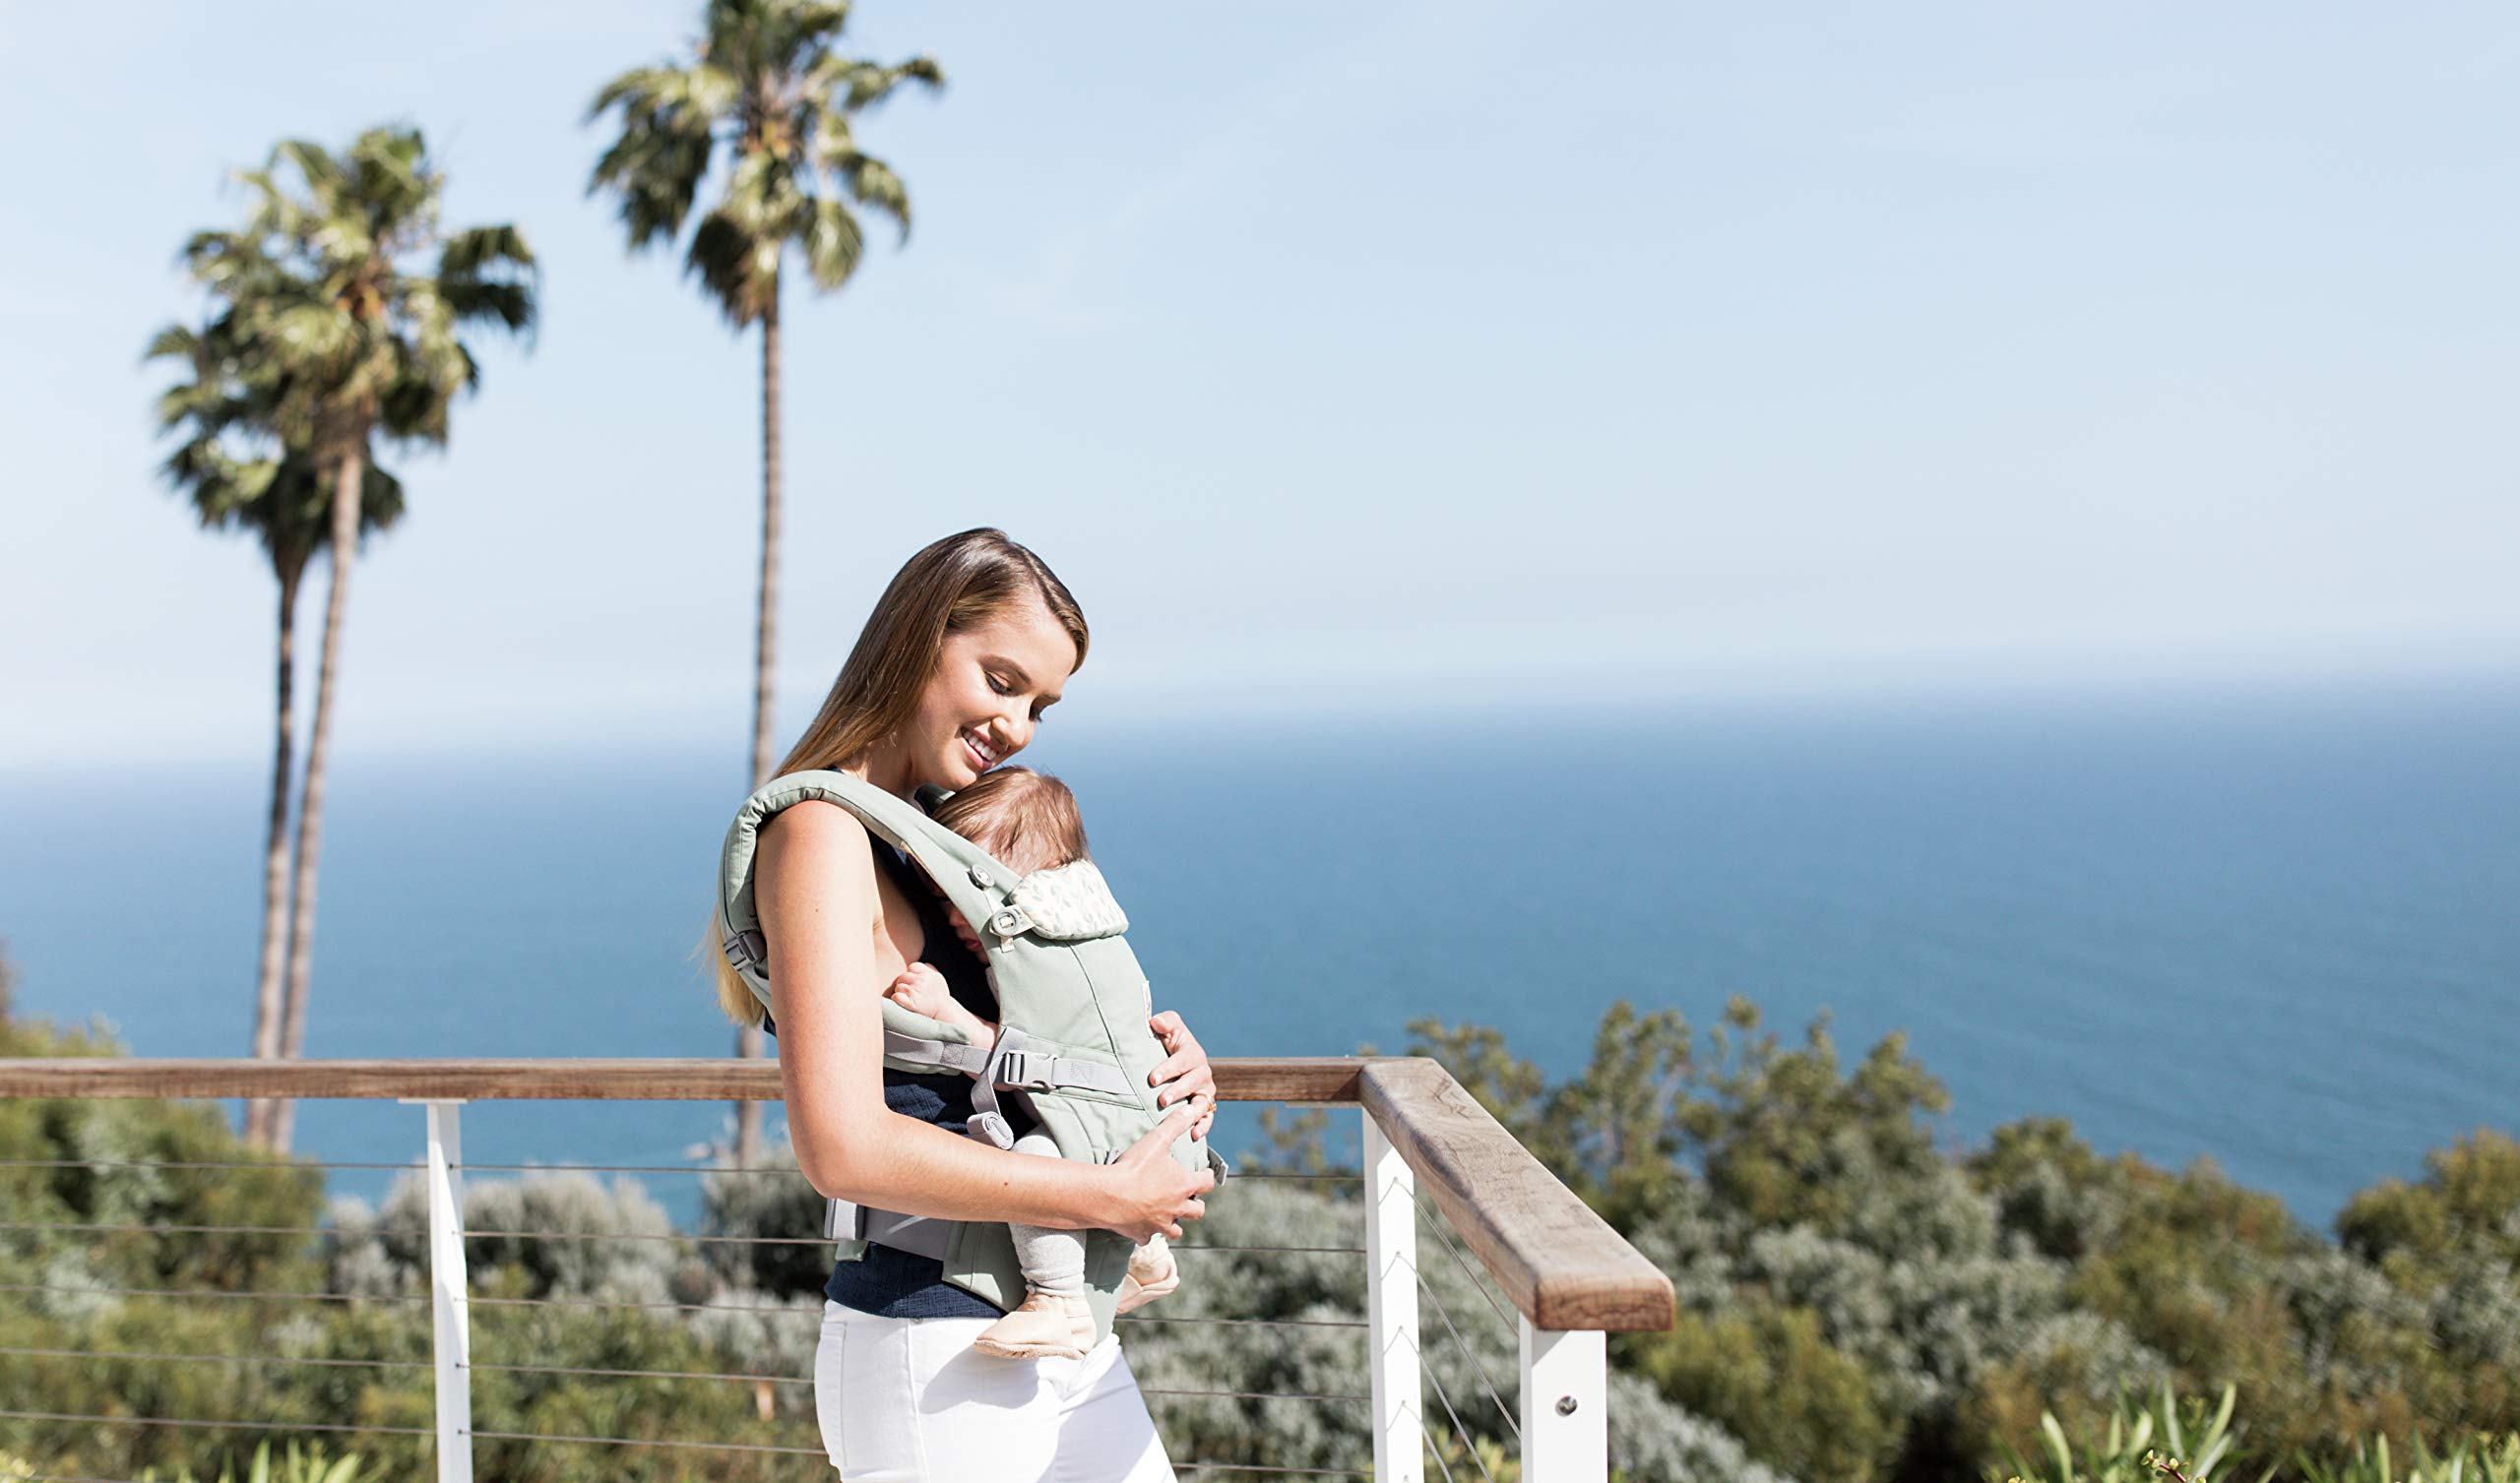 Ergobaby Baby Carrier Collection Adapt (3.2-20 kg), Sage Ergobaby 3 ergonomic wearing positions: on the front, on the back and on the hips Especially easy to use Suitable from birth (3.2 - 20kg) thanks to unique adjustment options 5